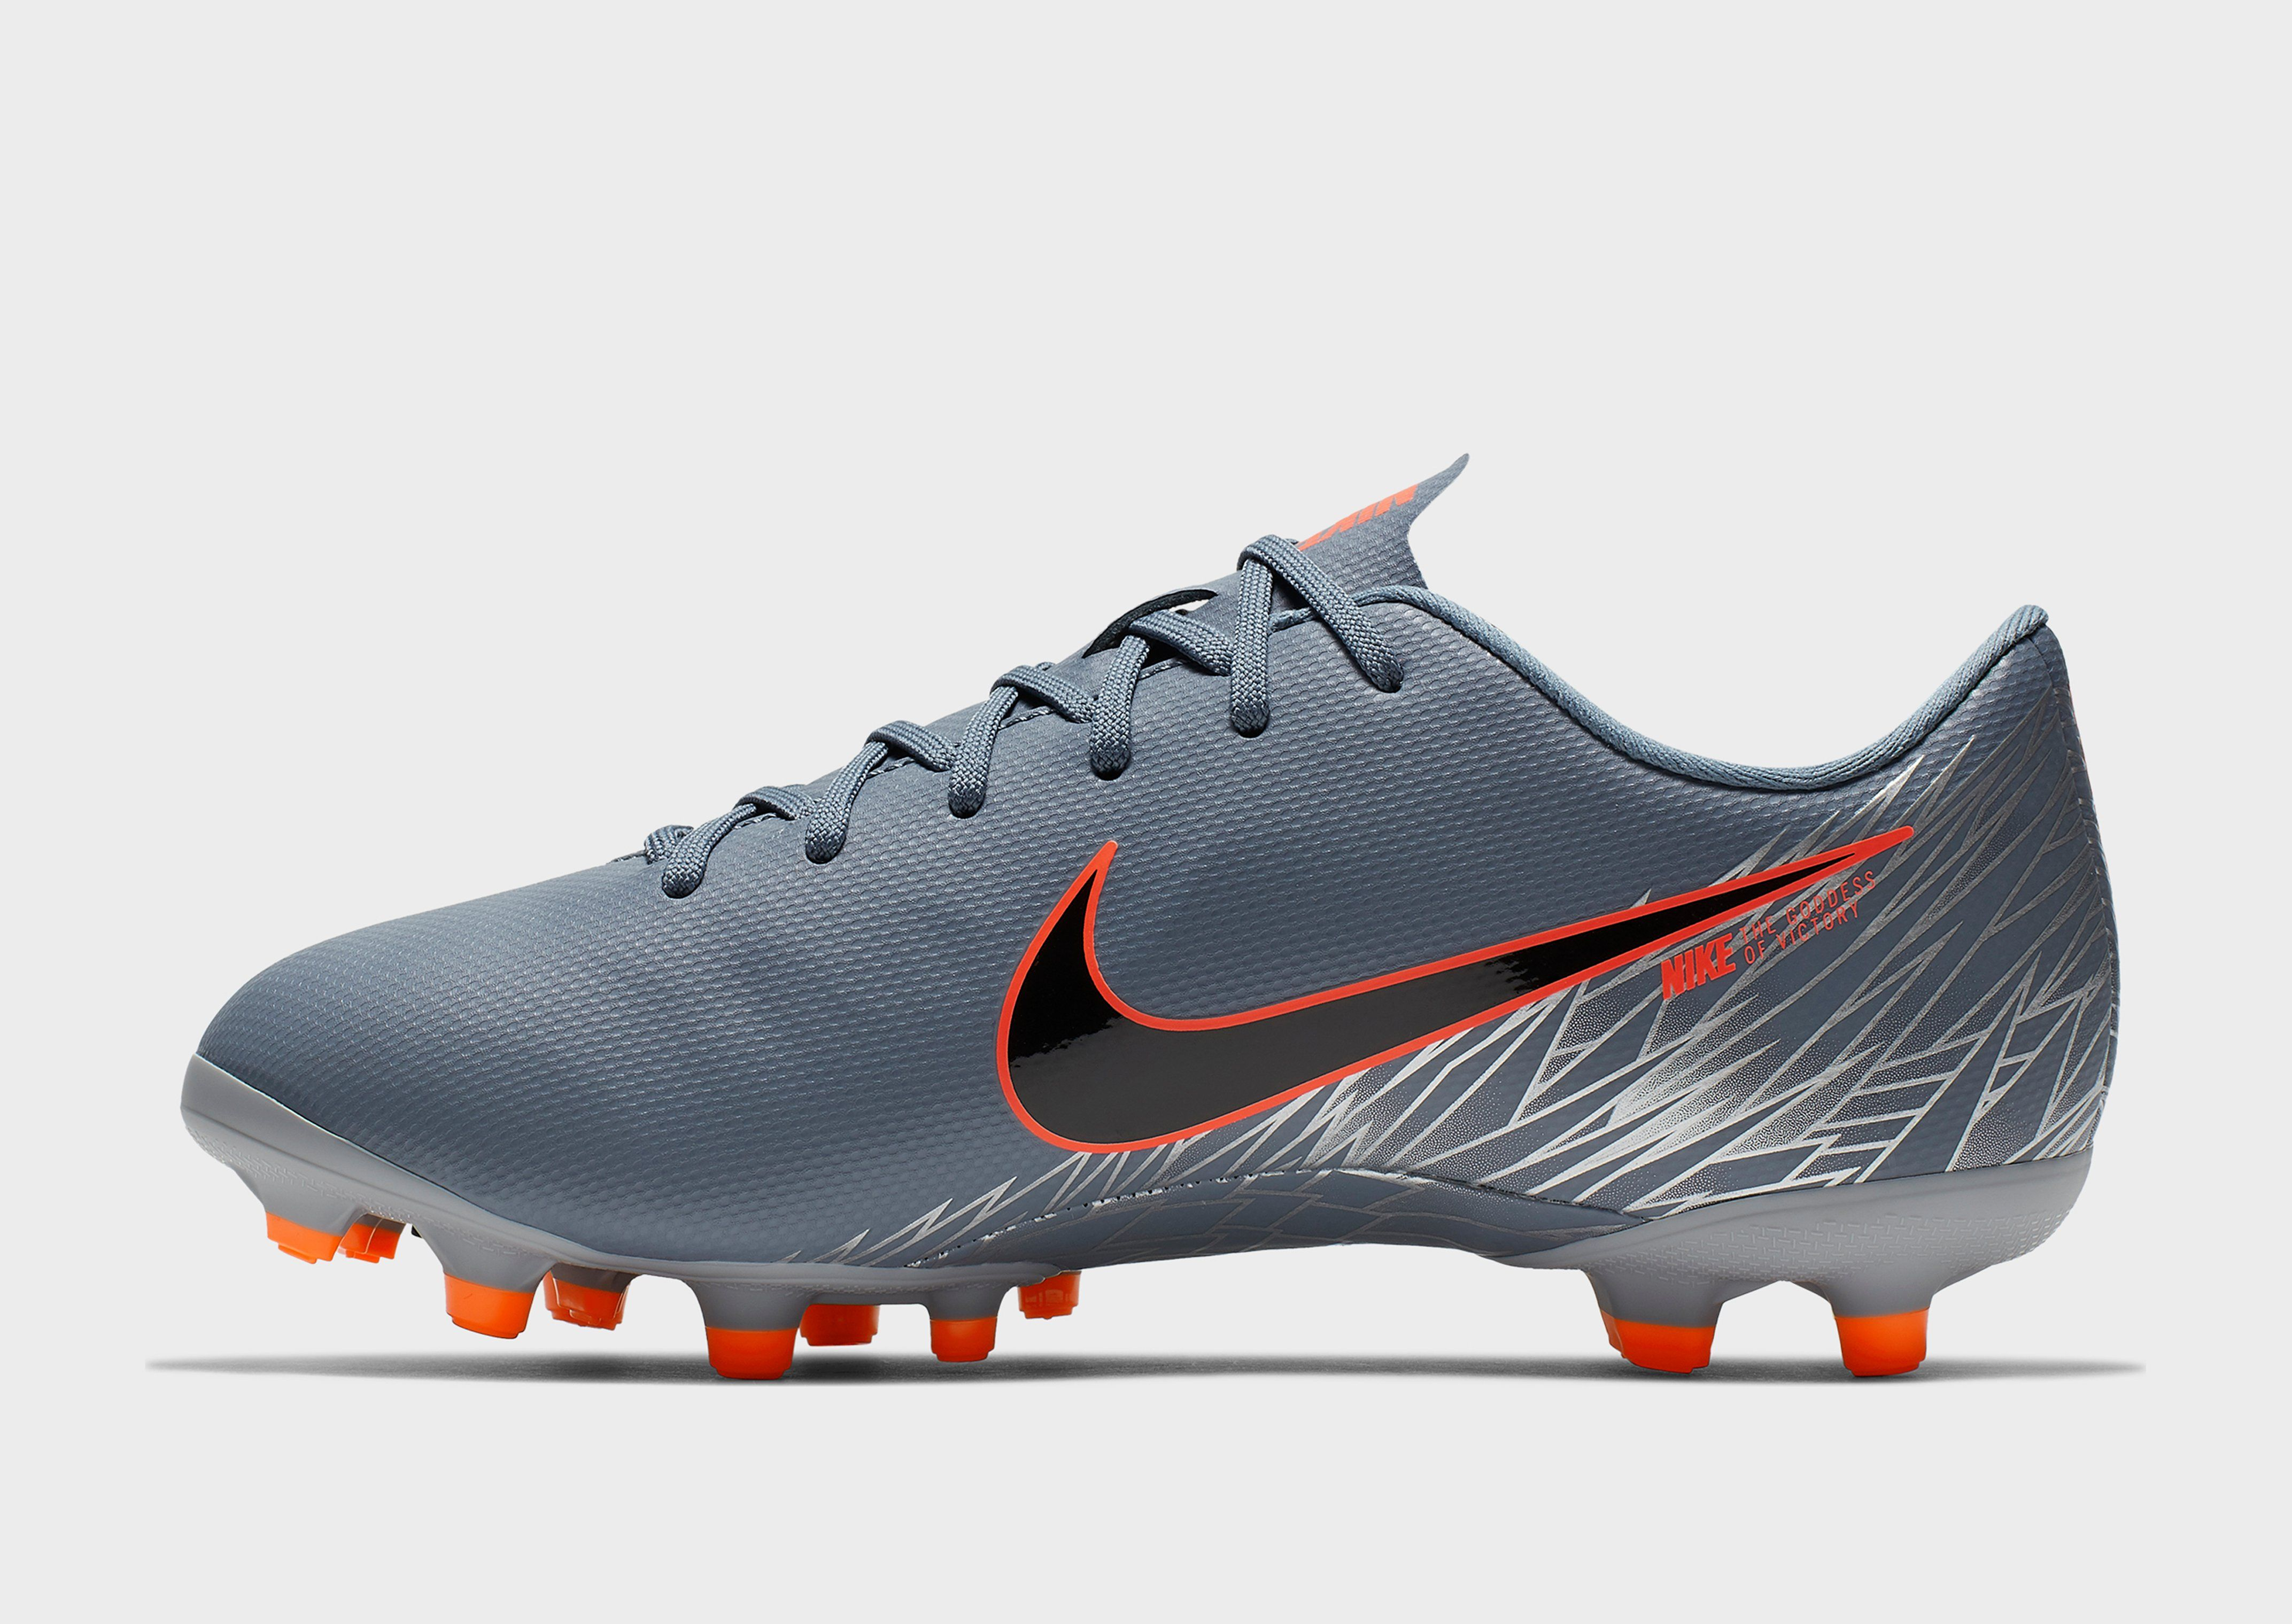 1b9b4f22352c Nike Nike Jr. Mercurial Vapor XII Academy Younger/Older Kids' Multi-Ground  Football Boot